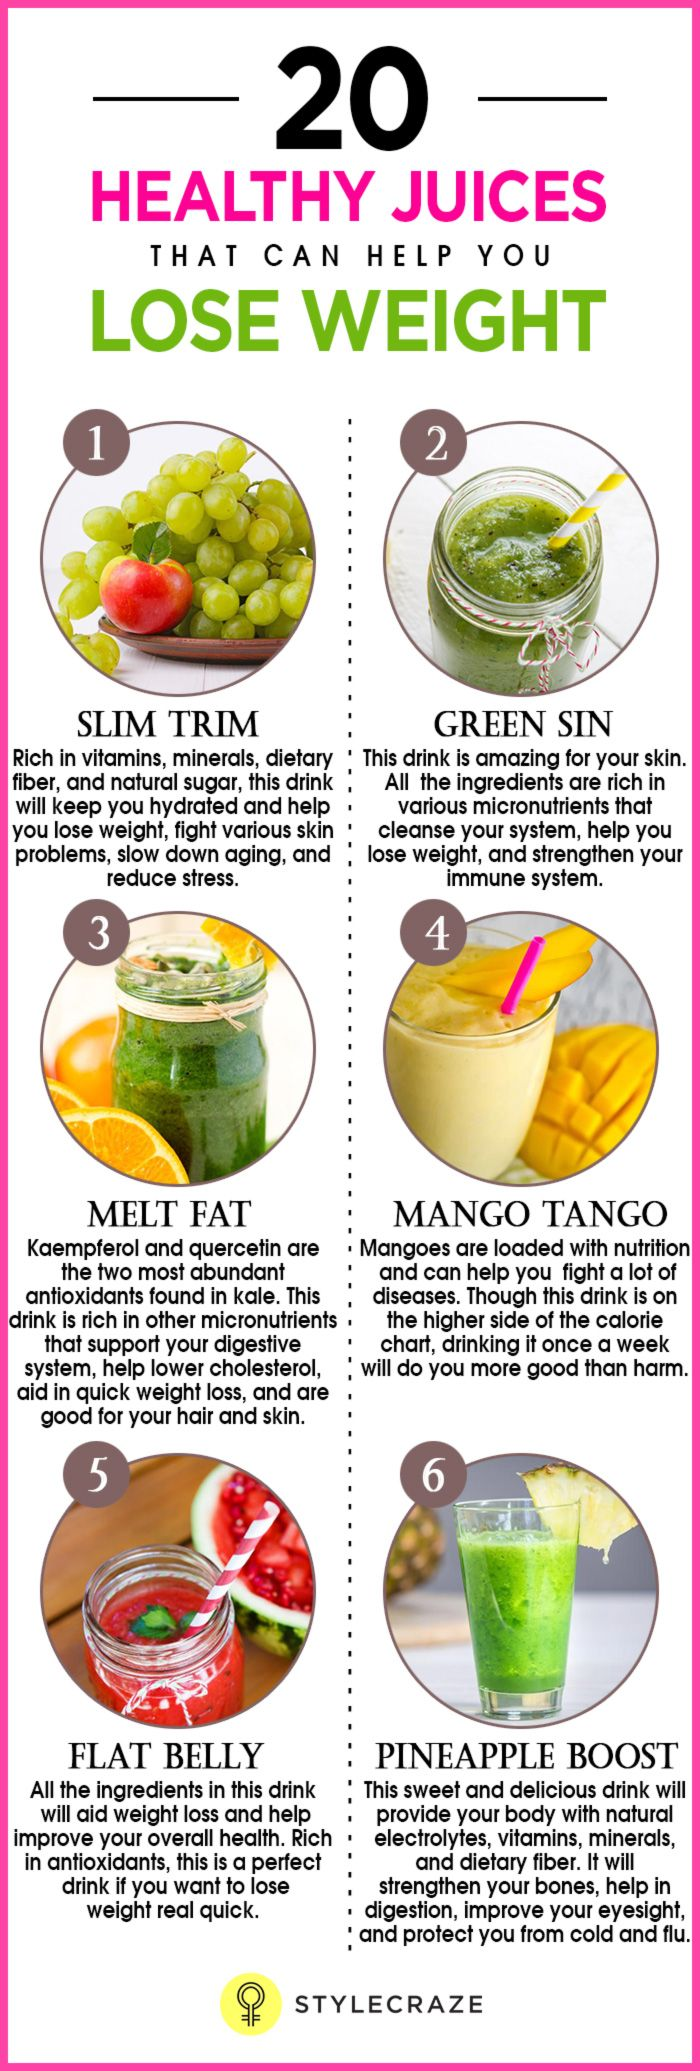 20 healthy juices that can help you lose weight | intense workout